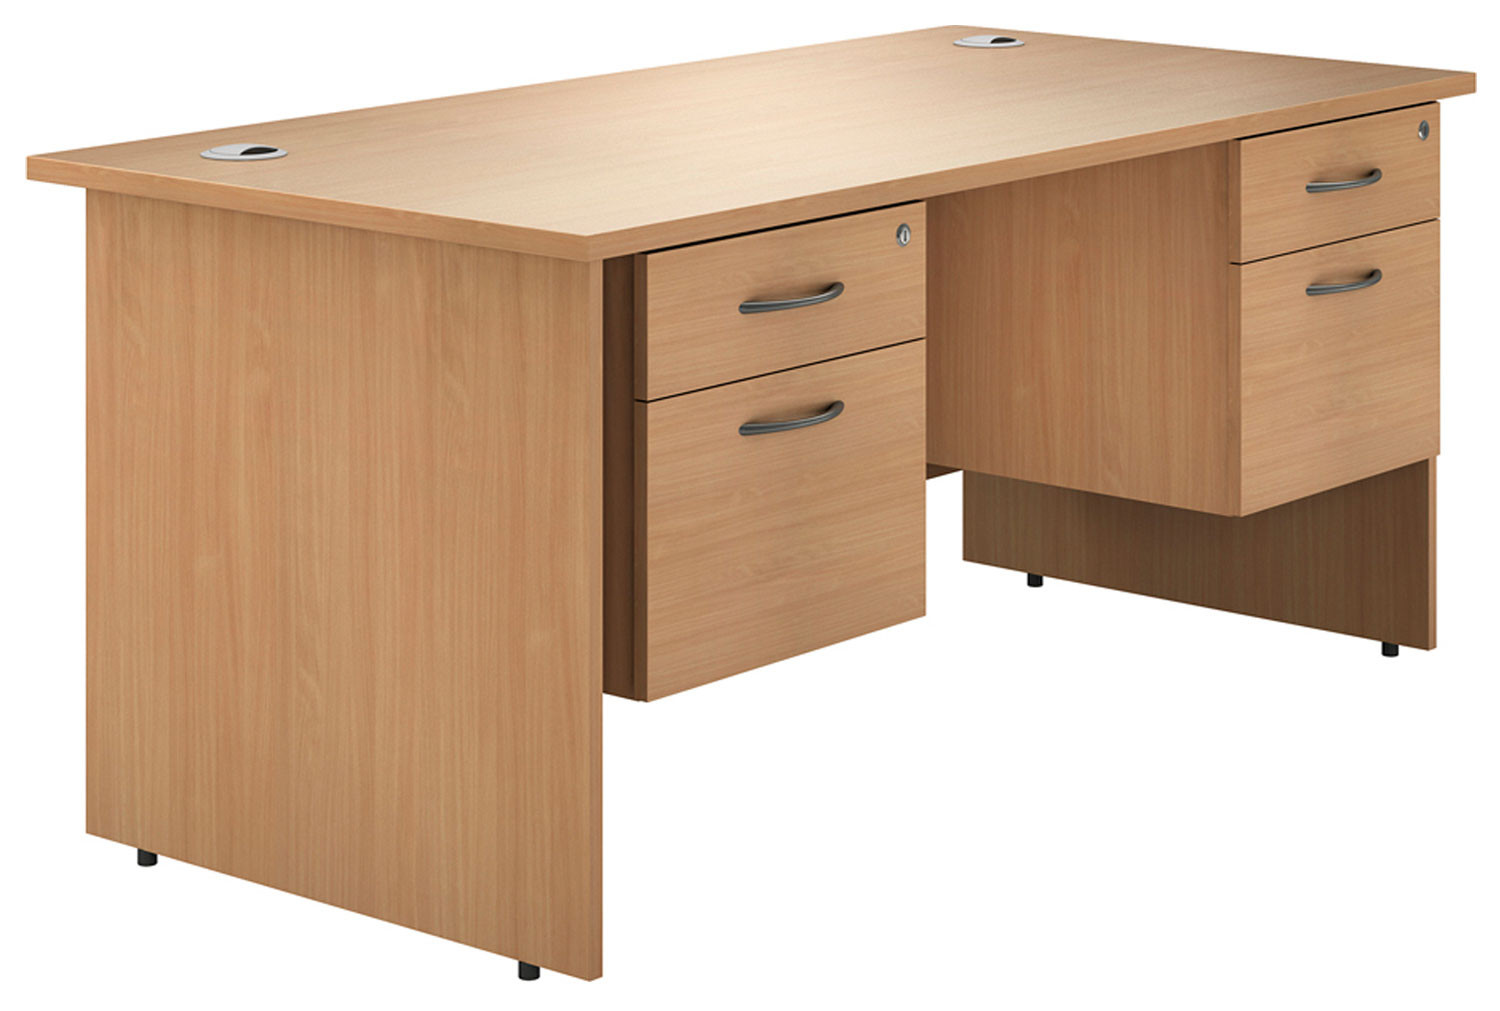 Astrada Panel End Double Pedestal Desk (Beech)